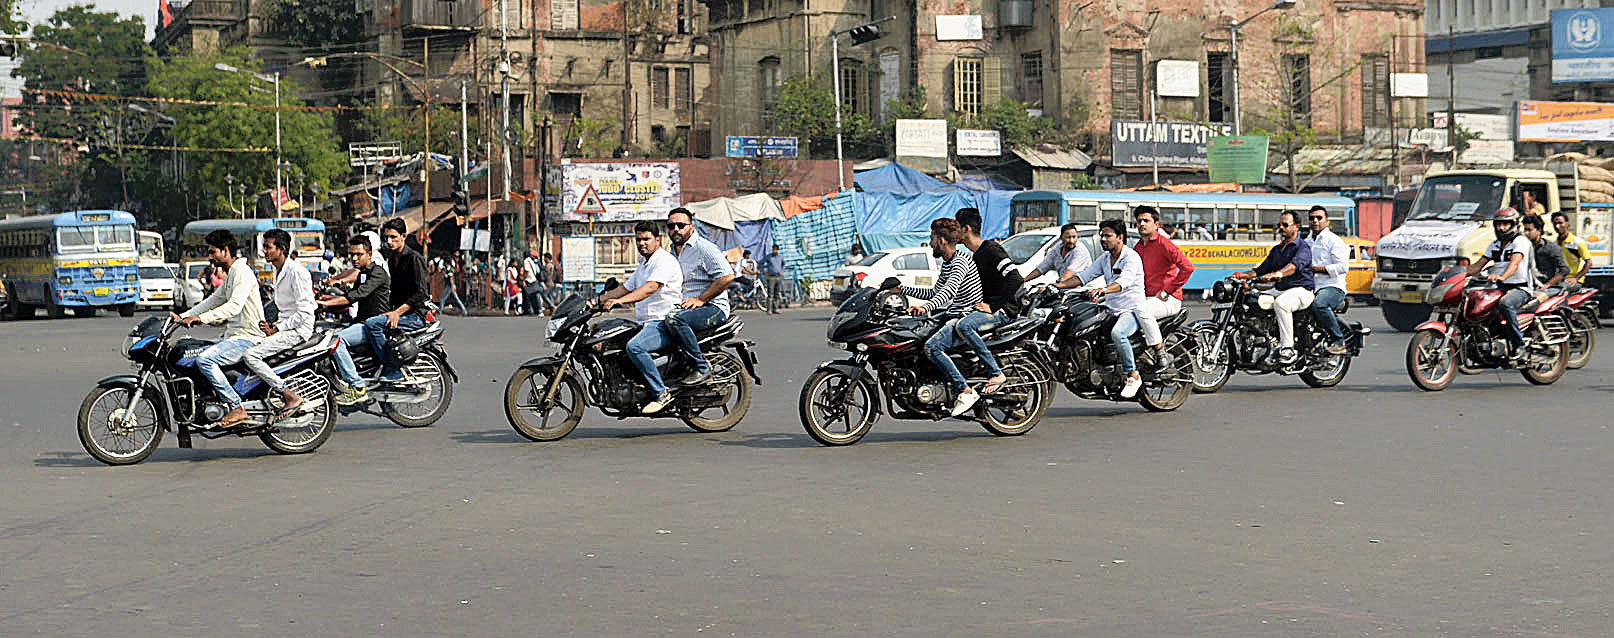 Total accidents in Bengal in 2018 (excluding Calcutta): 10,042. Accidents involving two-wheelers: 3319.